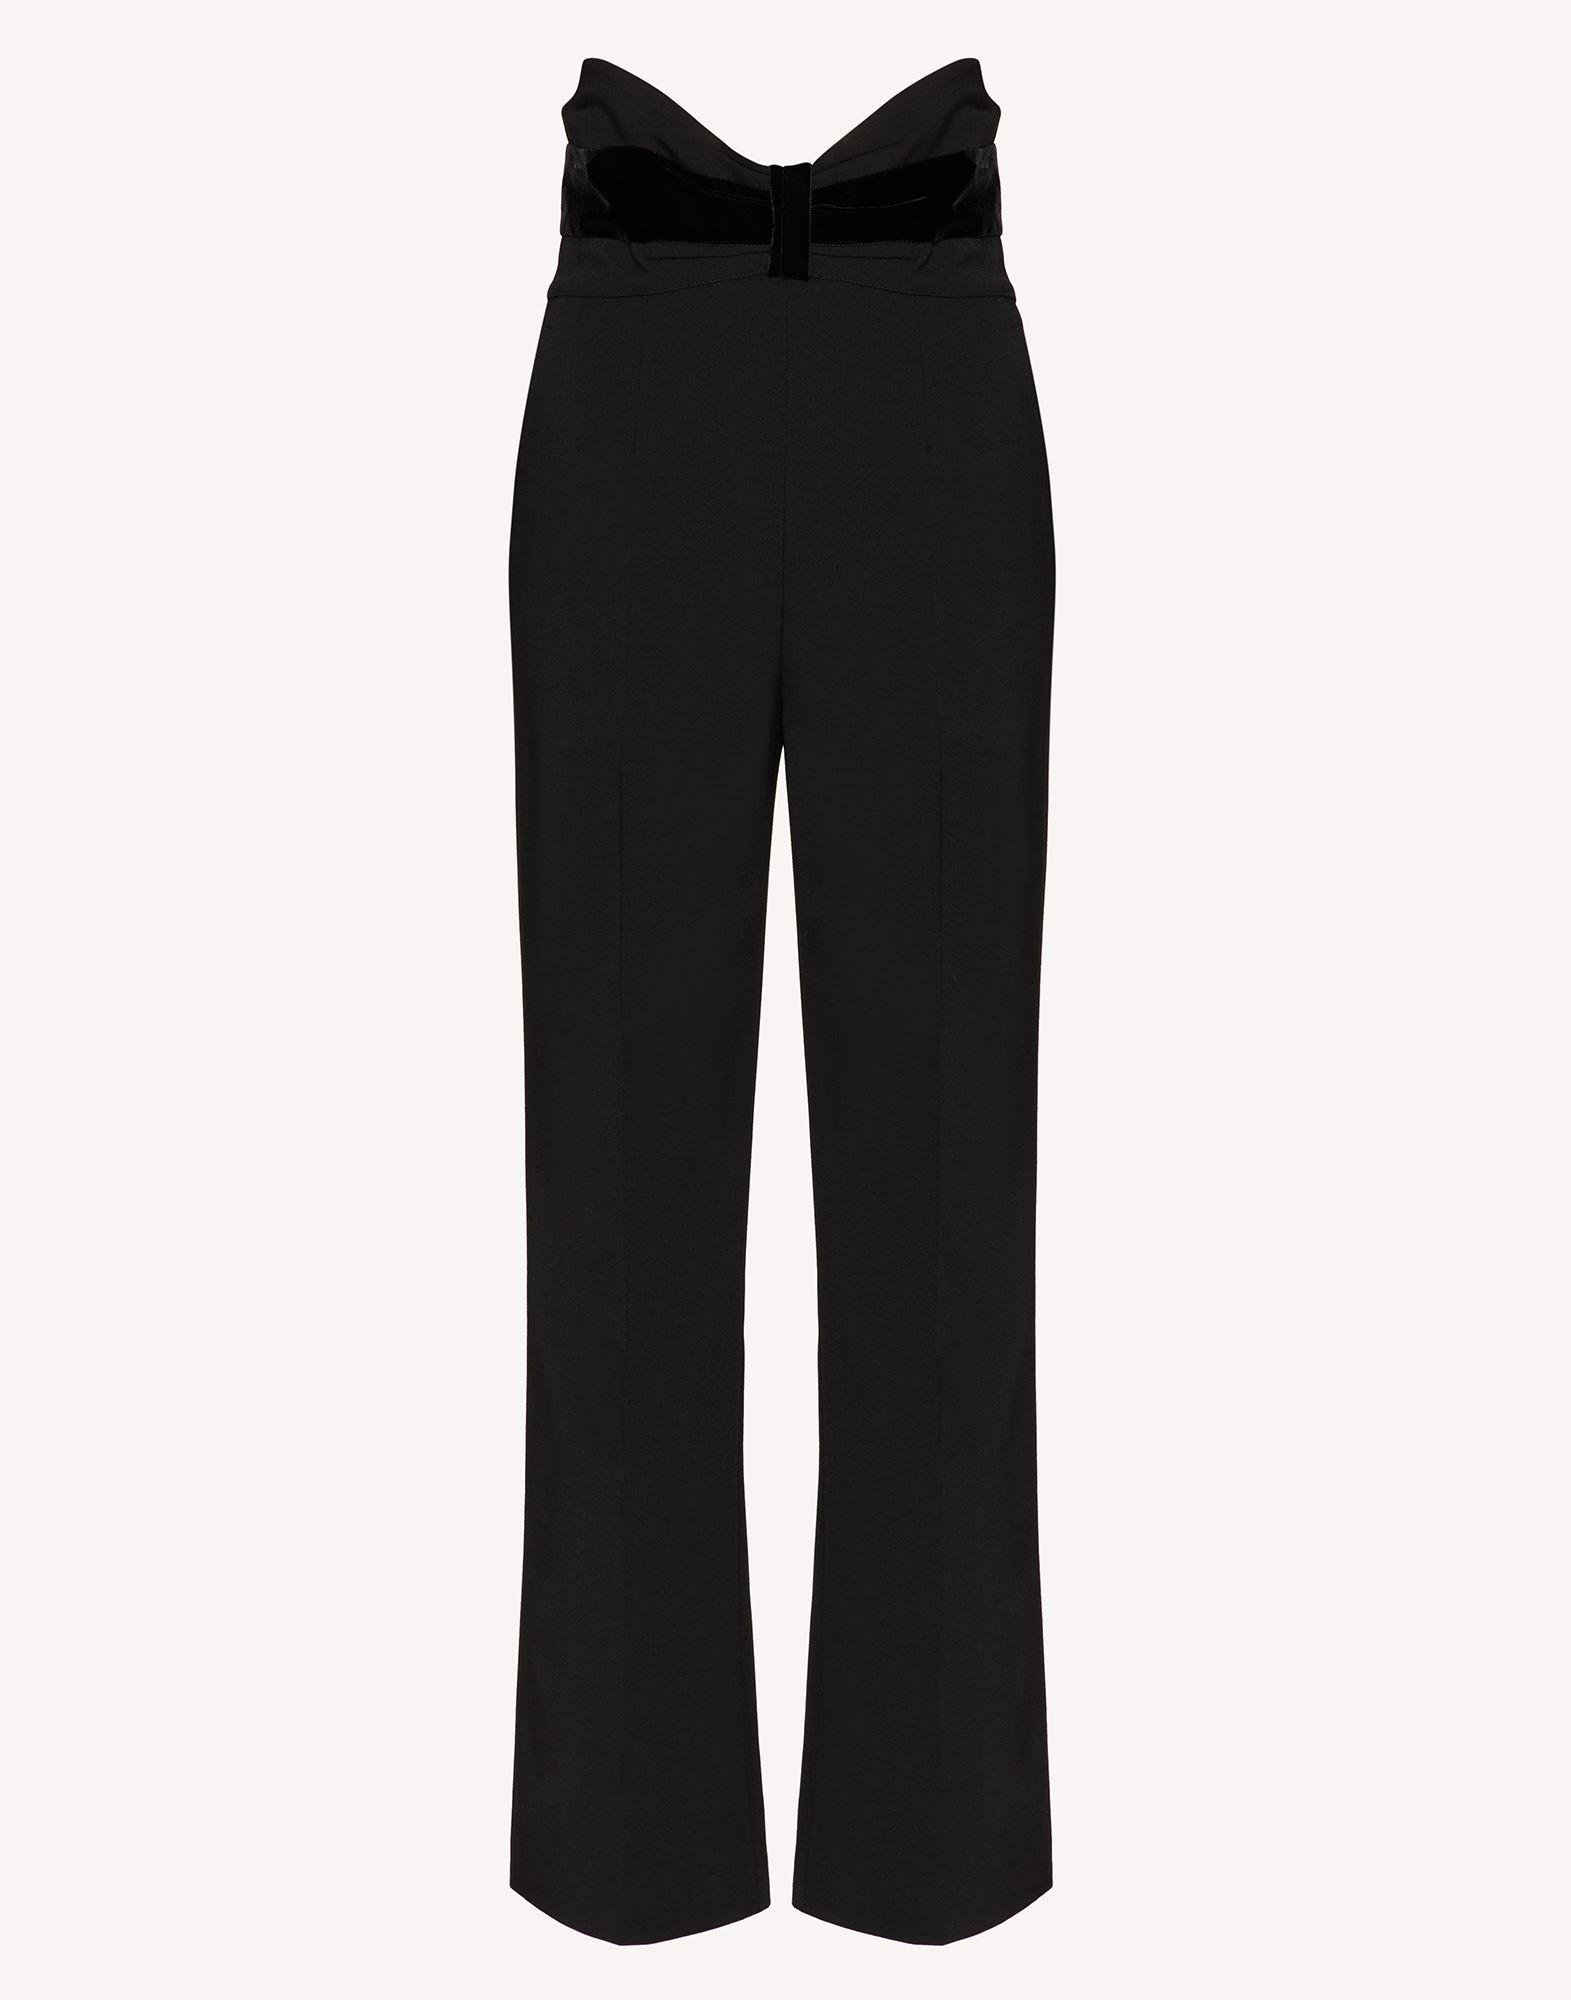 TUXEDO BOW DETAIL WOOL STRETCH REPS PANTS 4